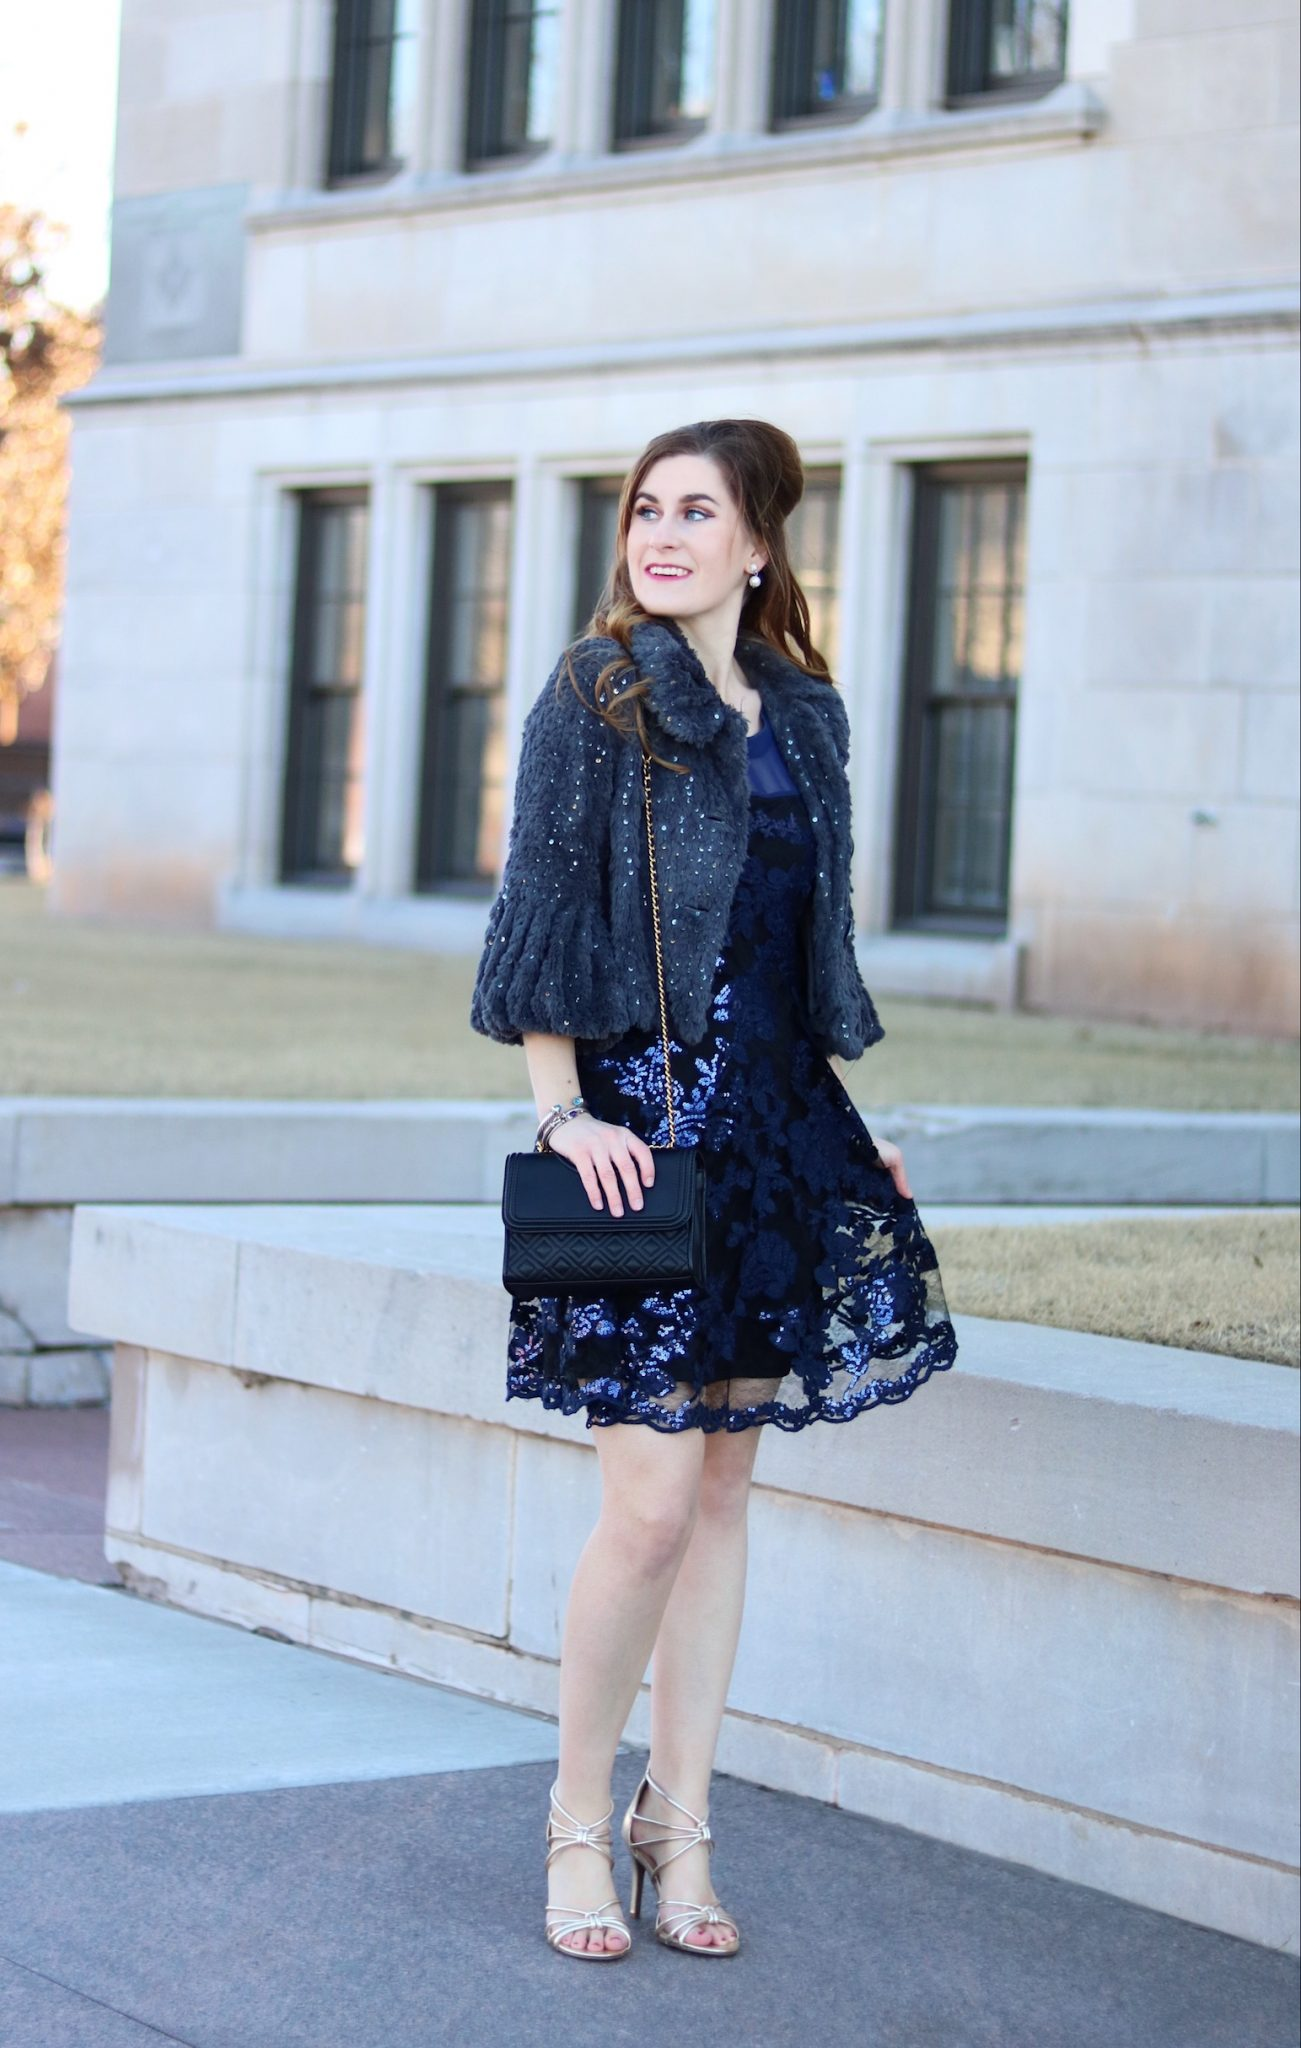 What to Wear to a Formal Event